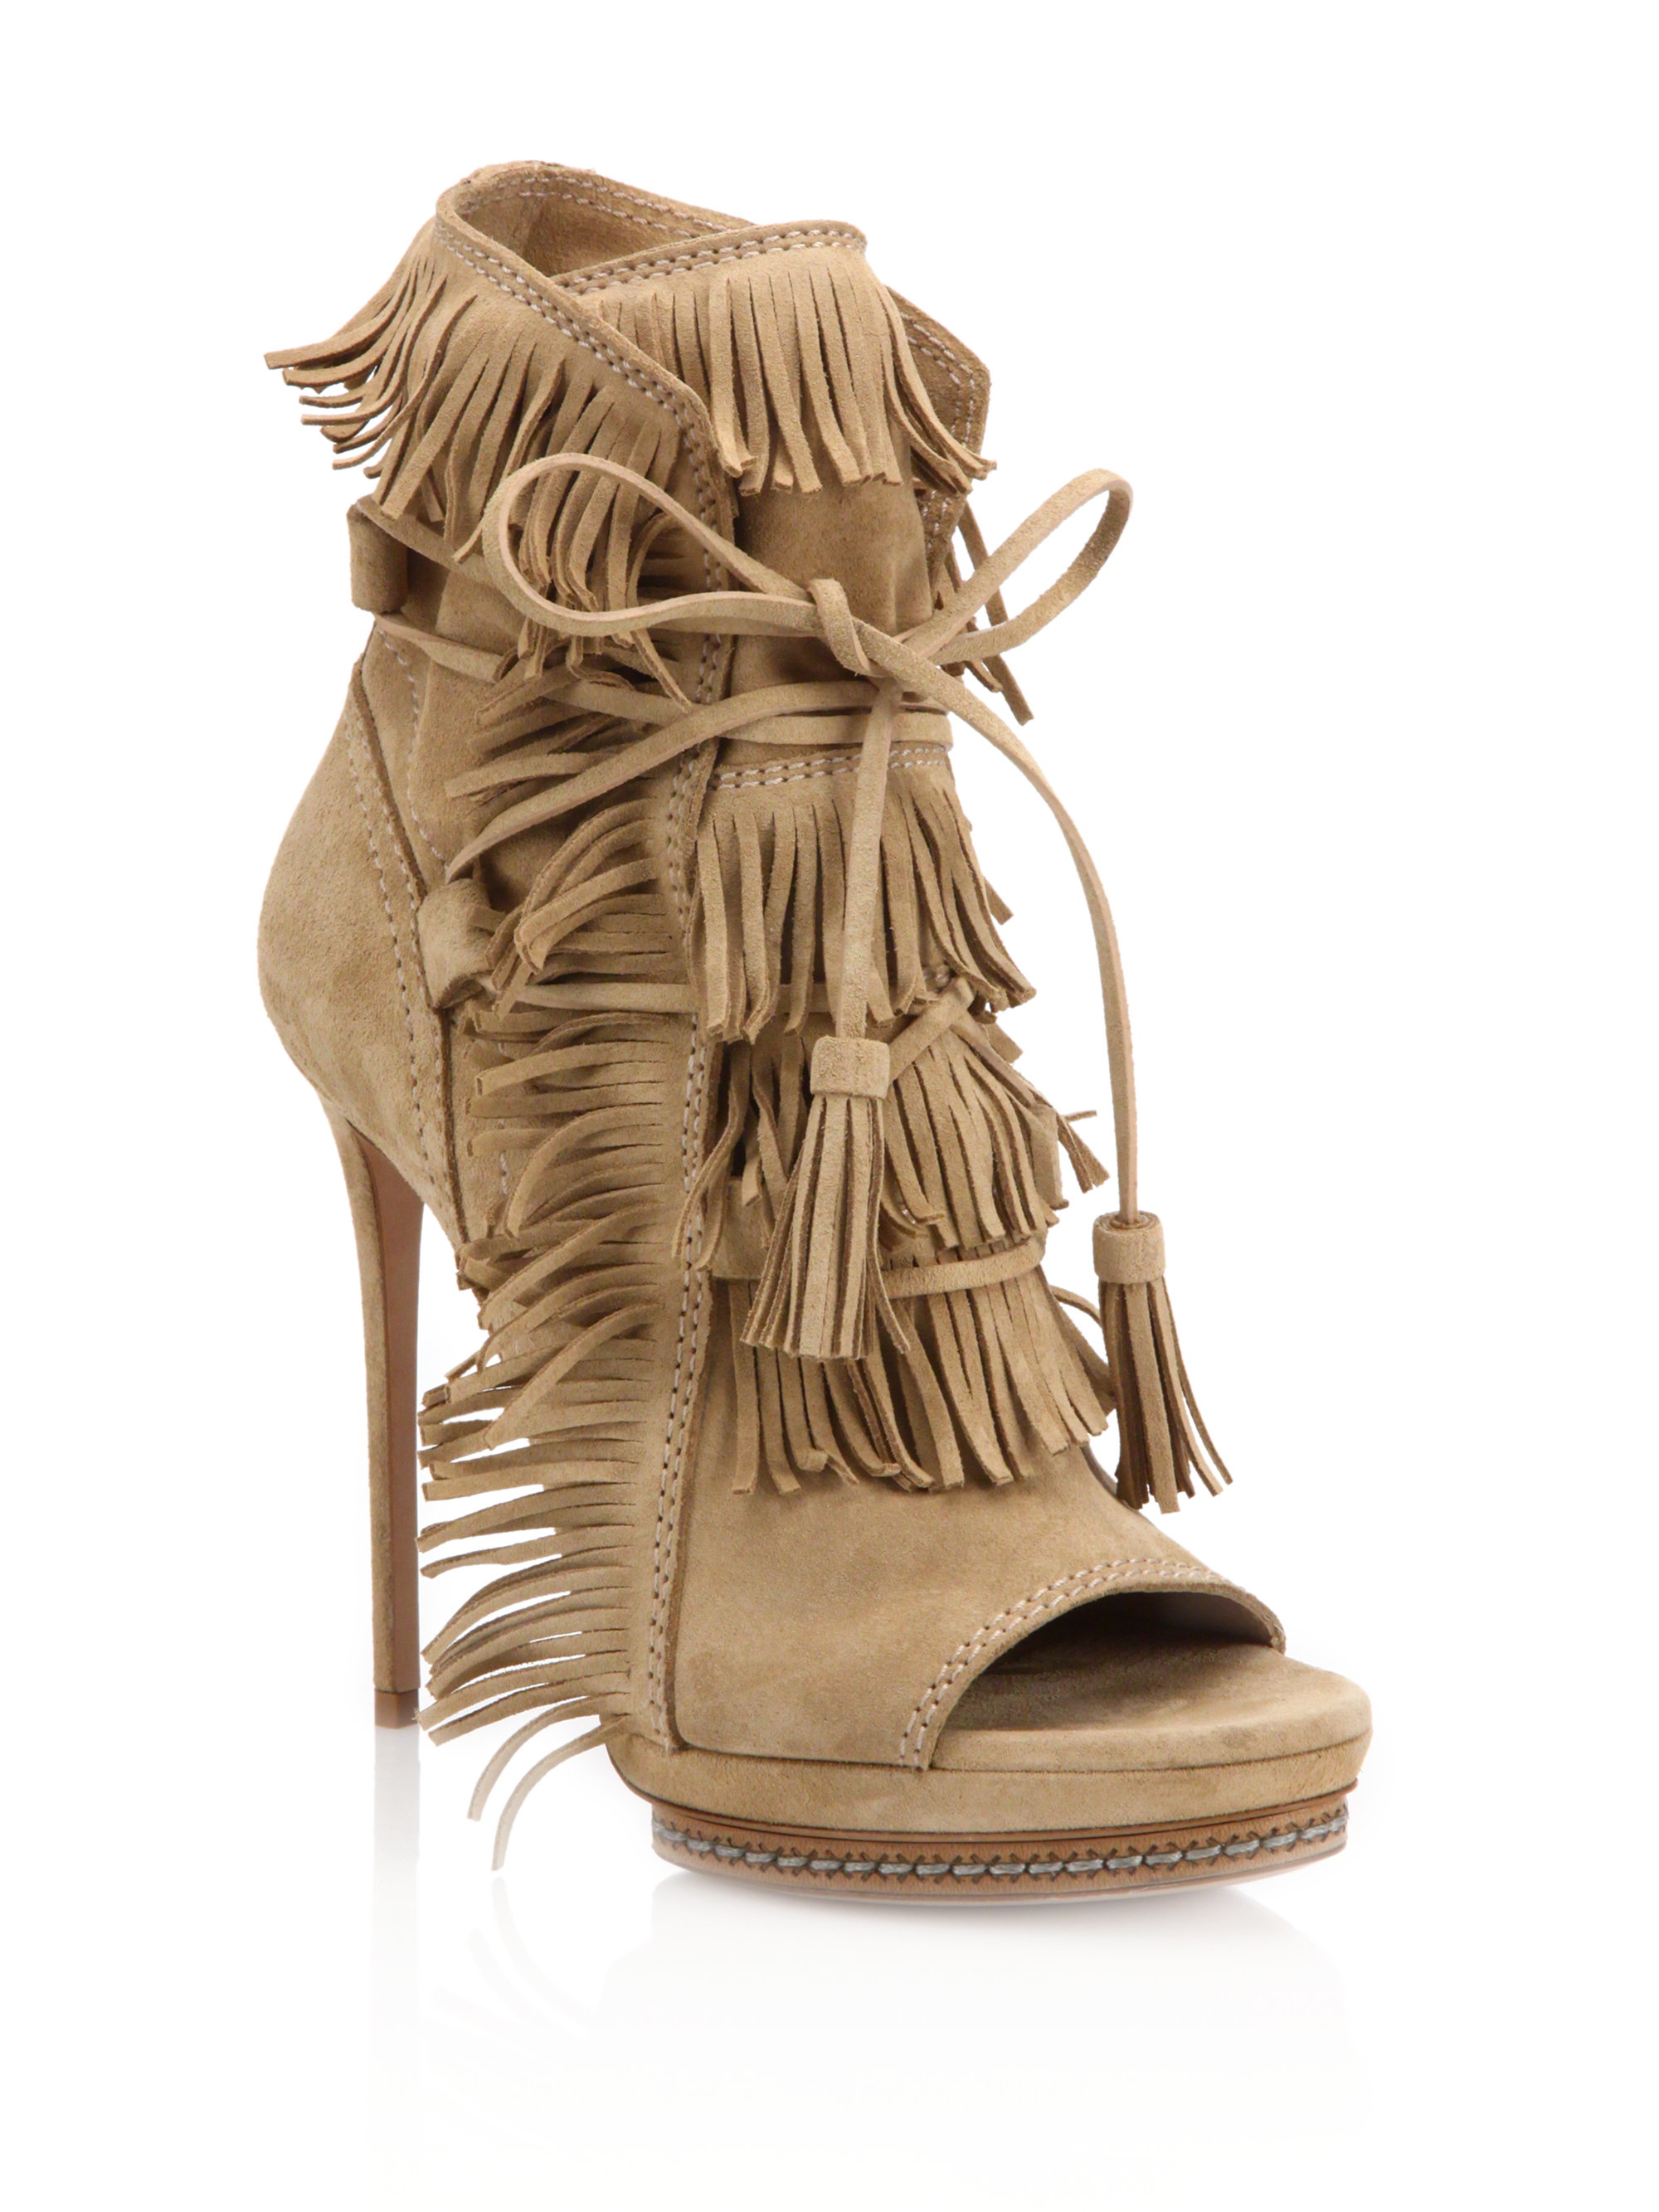 76e0b135024 Lyst - Casadei Fringed Suede Peep-toe Booties in Natural